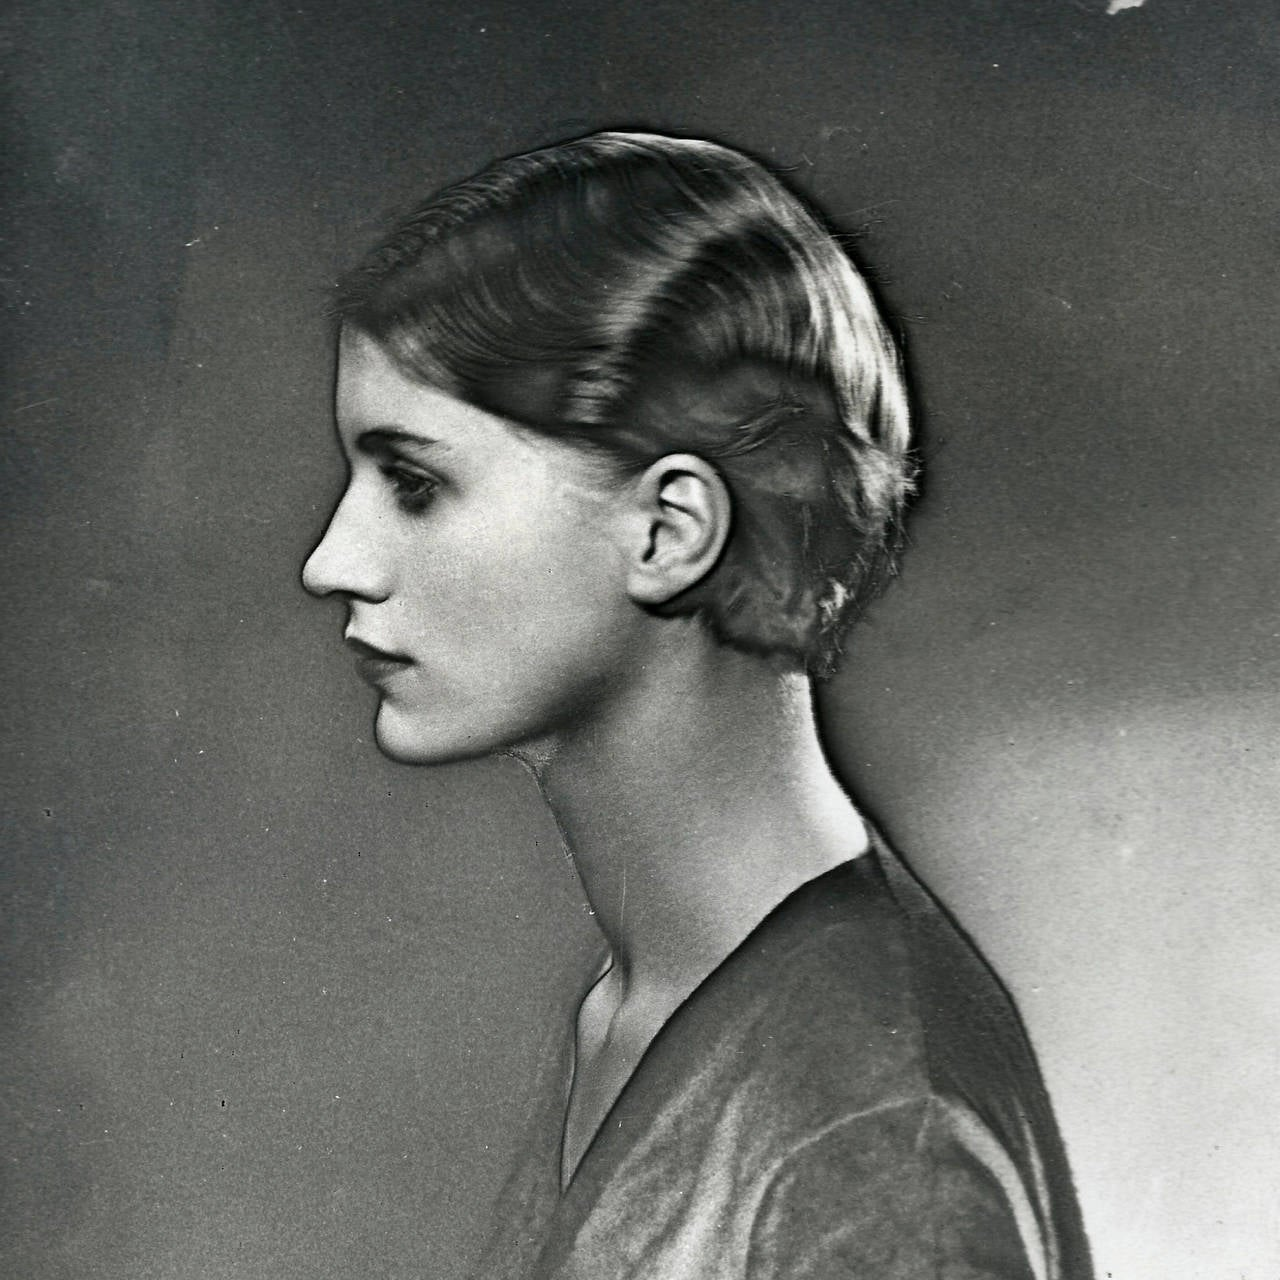 Man Ray Photography of Lee Miller For Sale at 1stdibs: https://www.1stdibs.com/furniture/wall-decorations/photography/man...